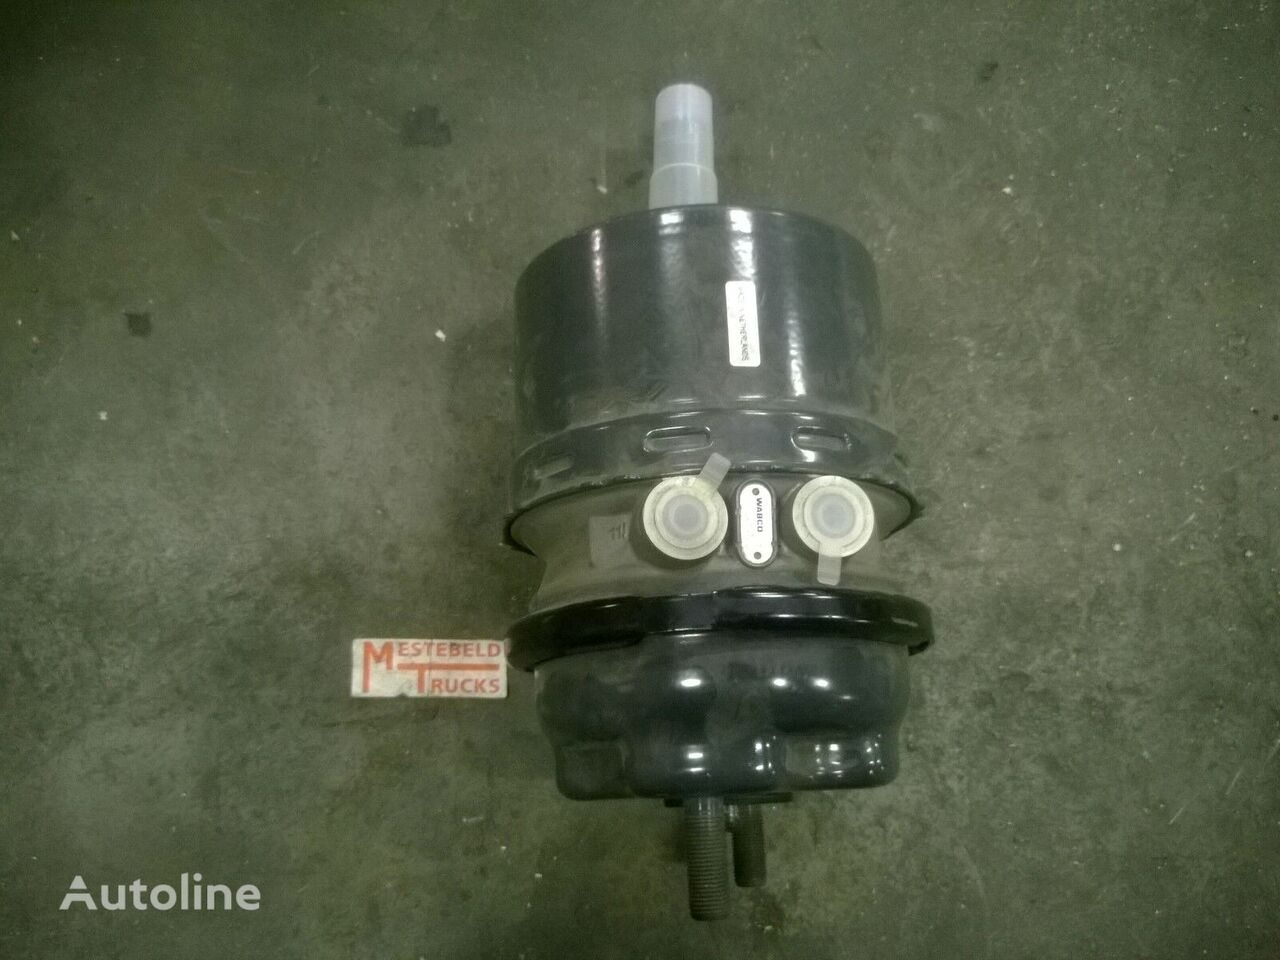 Rembooster RENAULT spare parts for RENAULT Premium truck